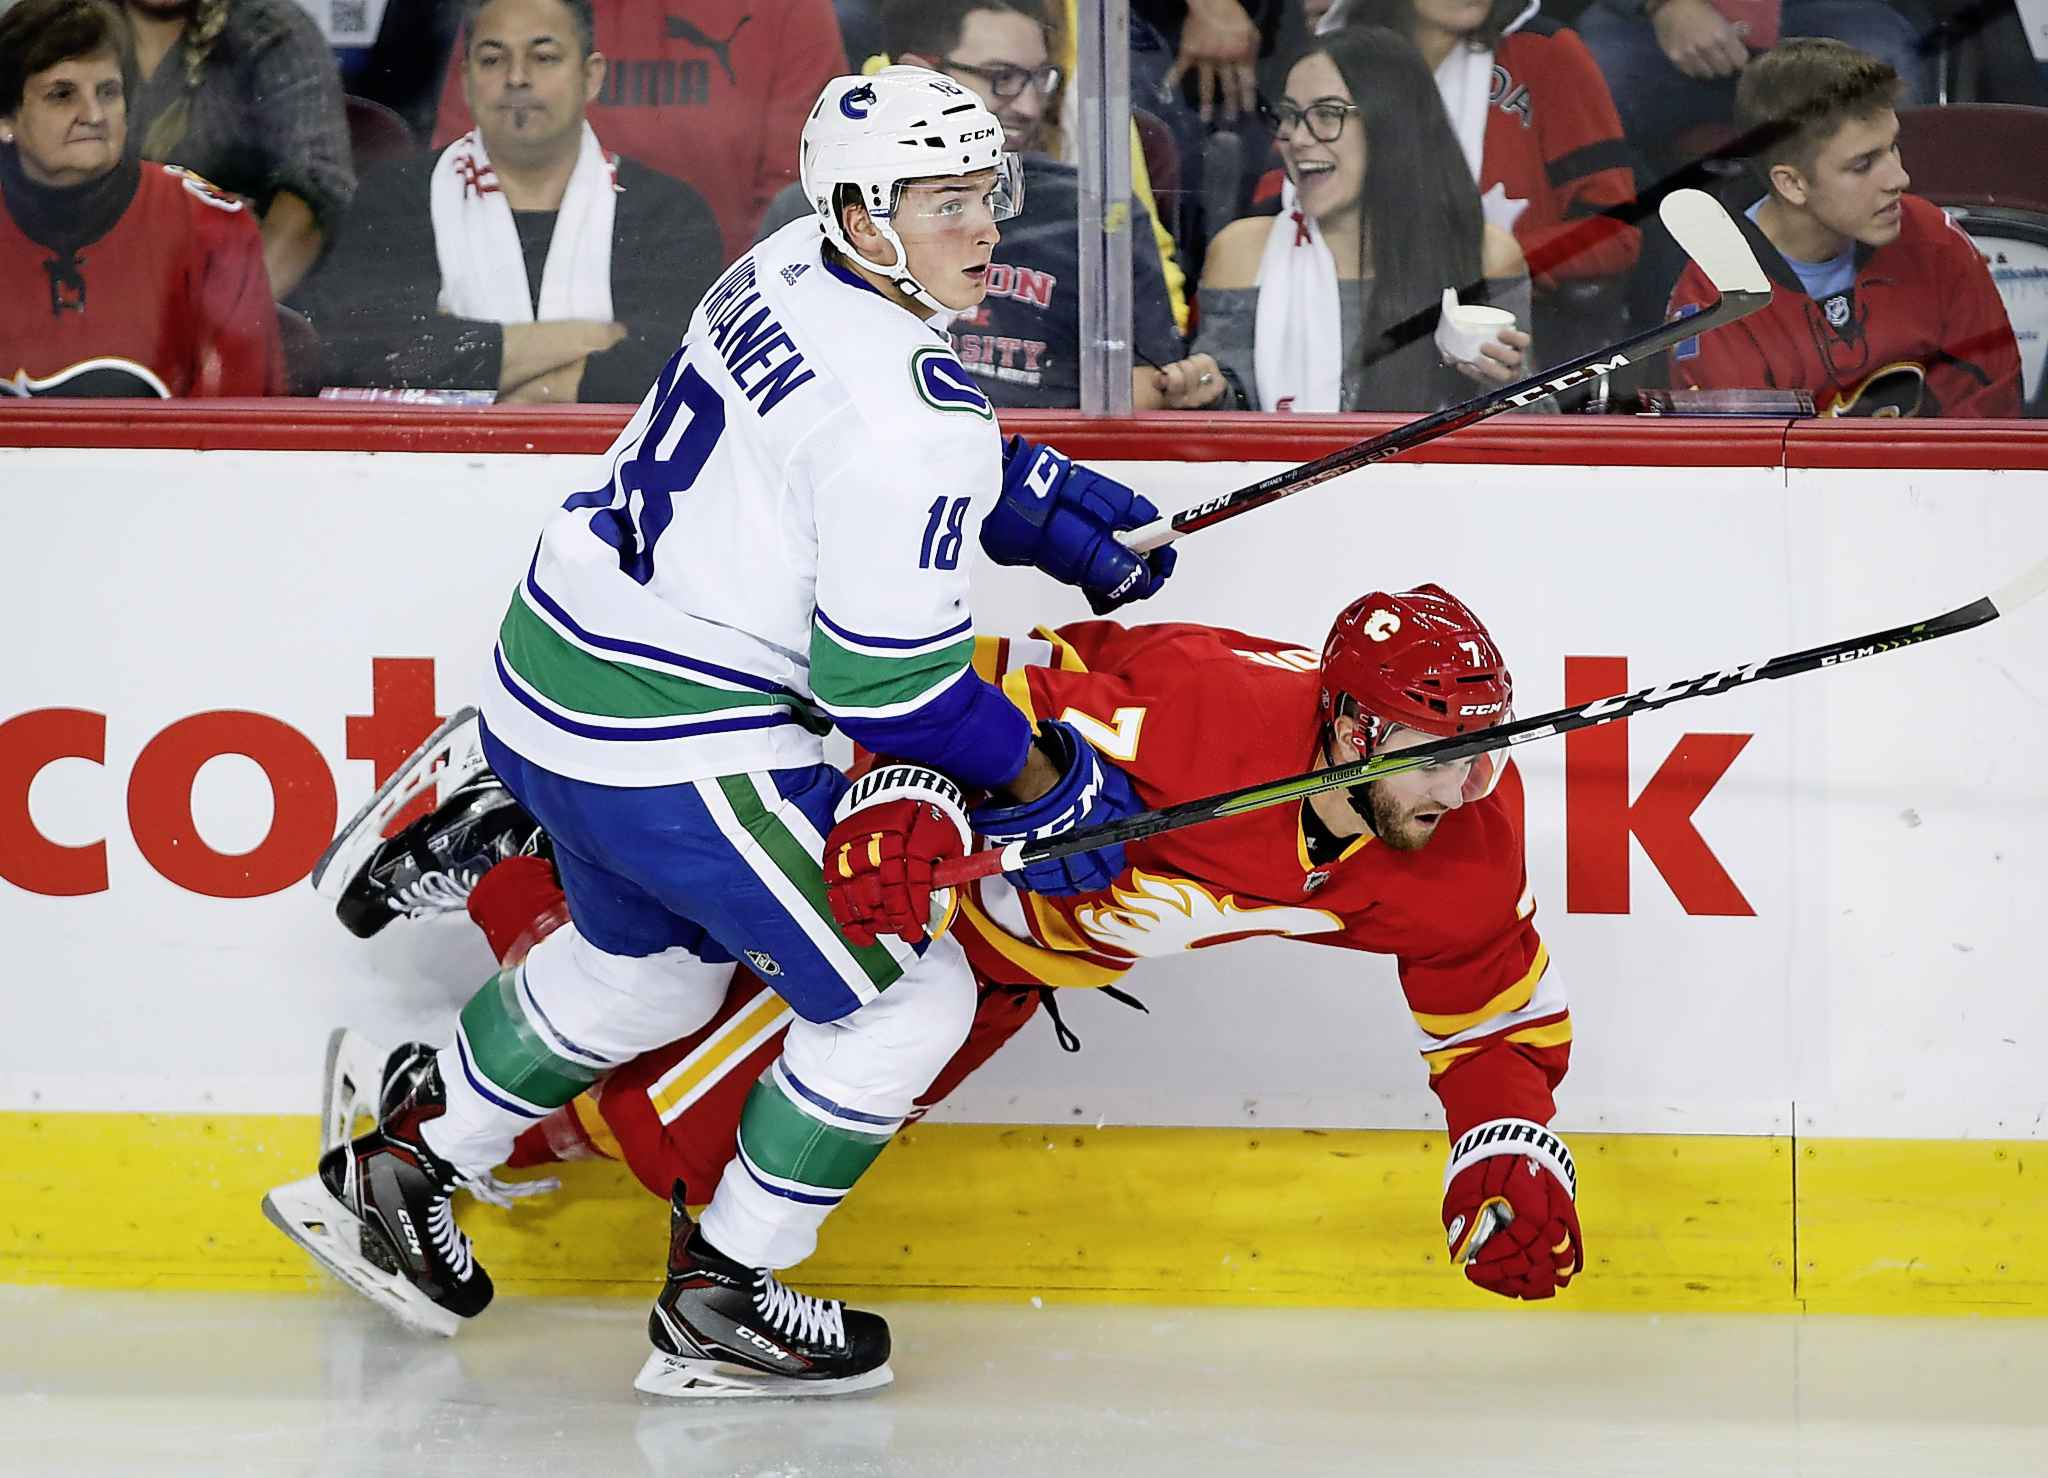 Vancouver's Jake Virtanen, left, is listed by the NHL as 6-1 and 226 compared to Perreault who is 5-10 and 188 pounds.